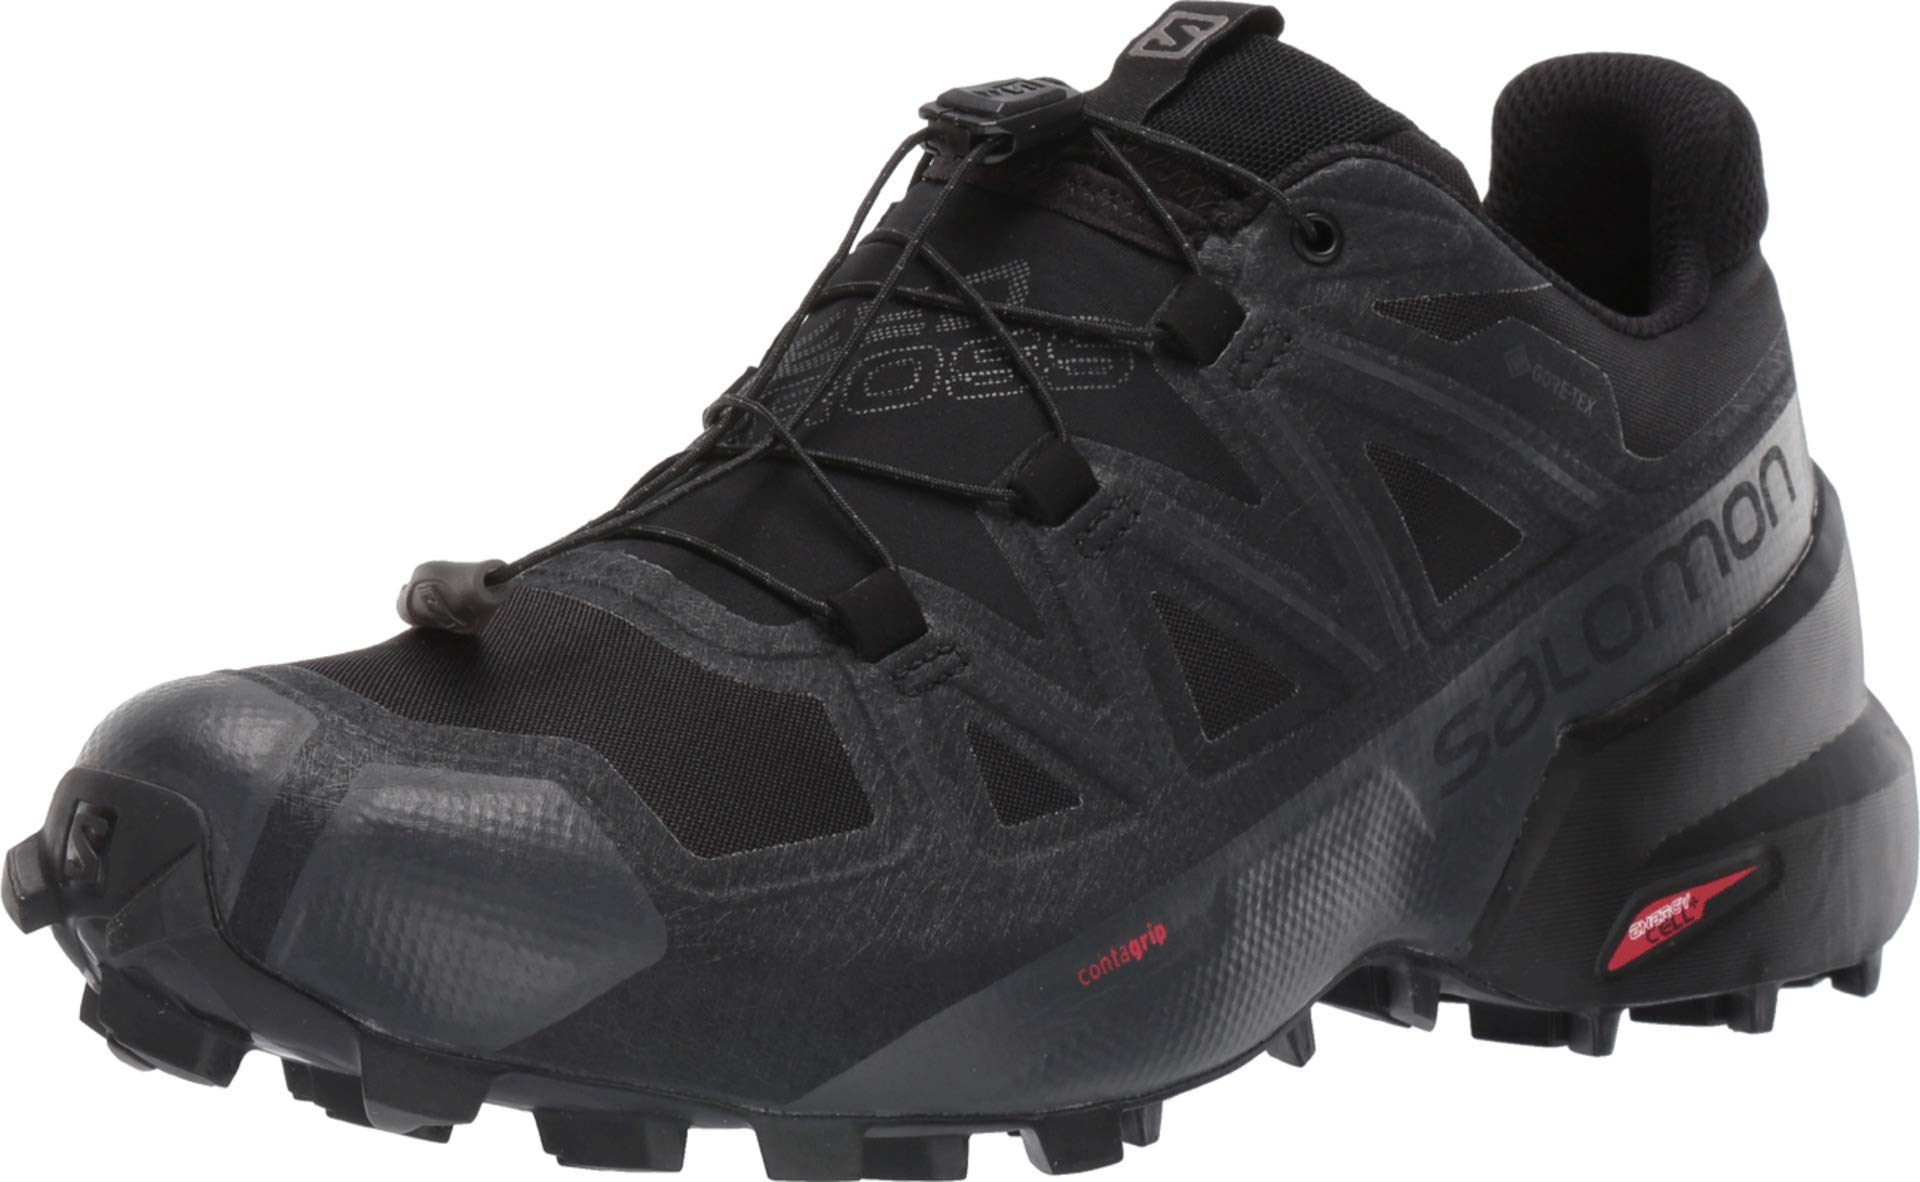 Salomon Women's Speedcross 5 GTX Trail Running Shoes, Black/Black/PHANTOM, 7 by SALOMON